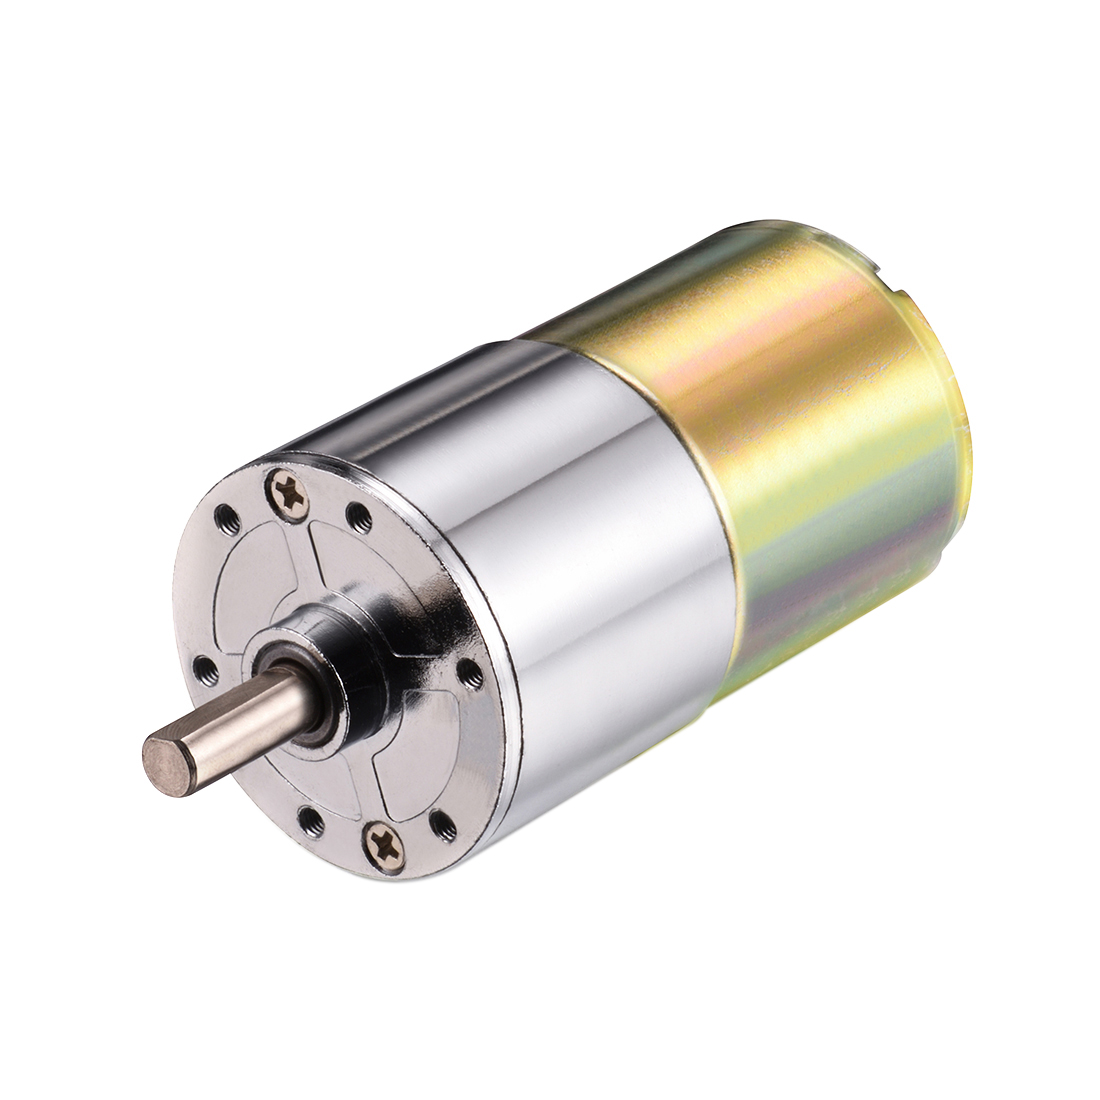 DC 24V 100RPM Micro Gear Box Motor Speed Reduction Electric Gearbox Centric Output Shaft